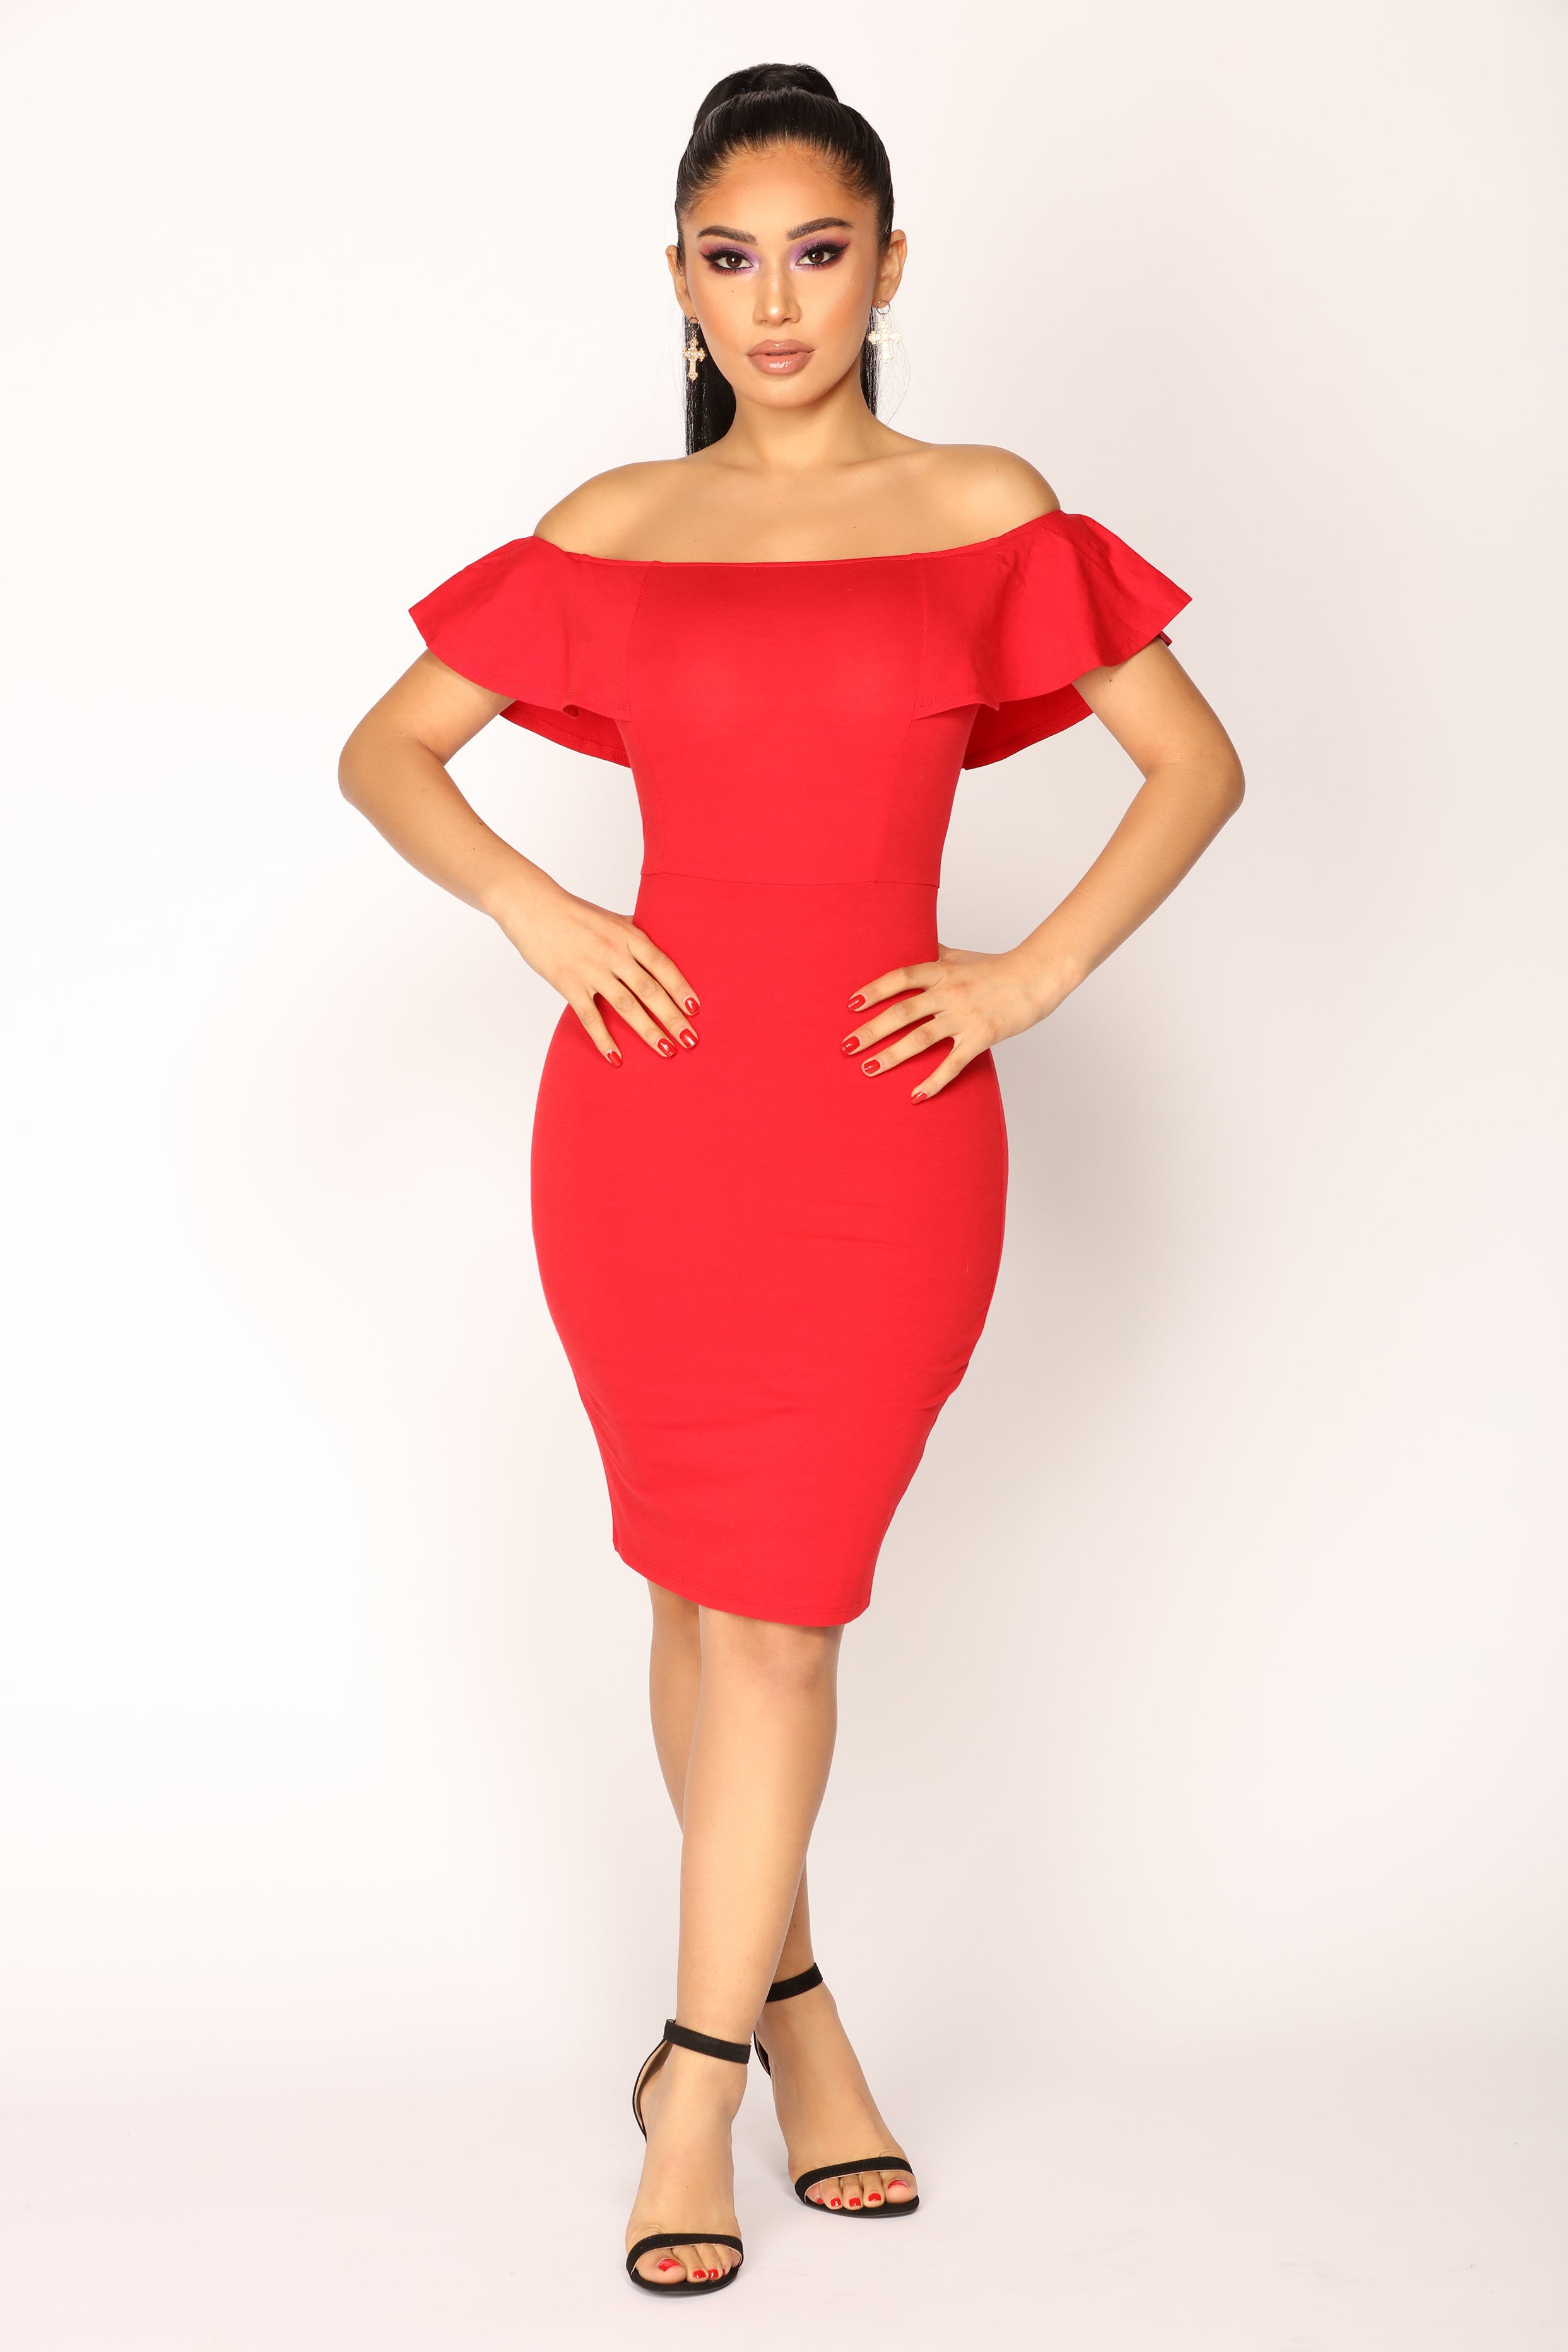 Latest Collections Footlocker Pictures Cheap Online DRESSES - Short dresses BERENICE Factory Outlet Cheap Online Discount Websites Cheap Best Wholesale U7hmNA4D3n